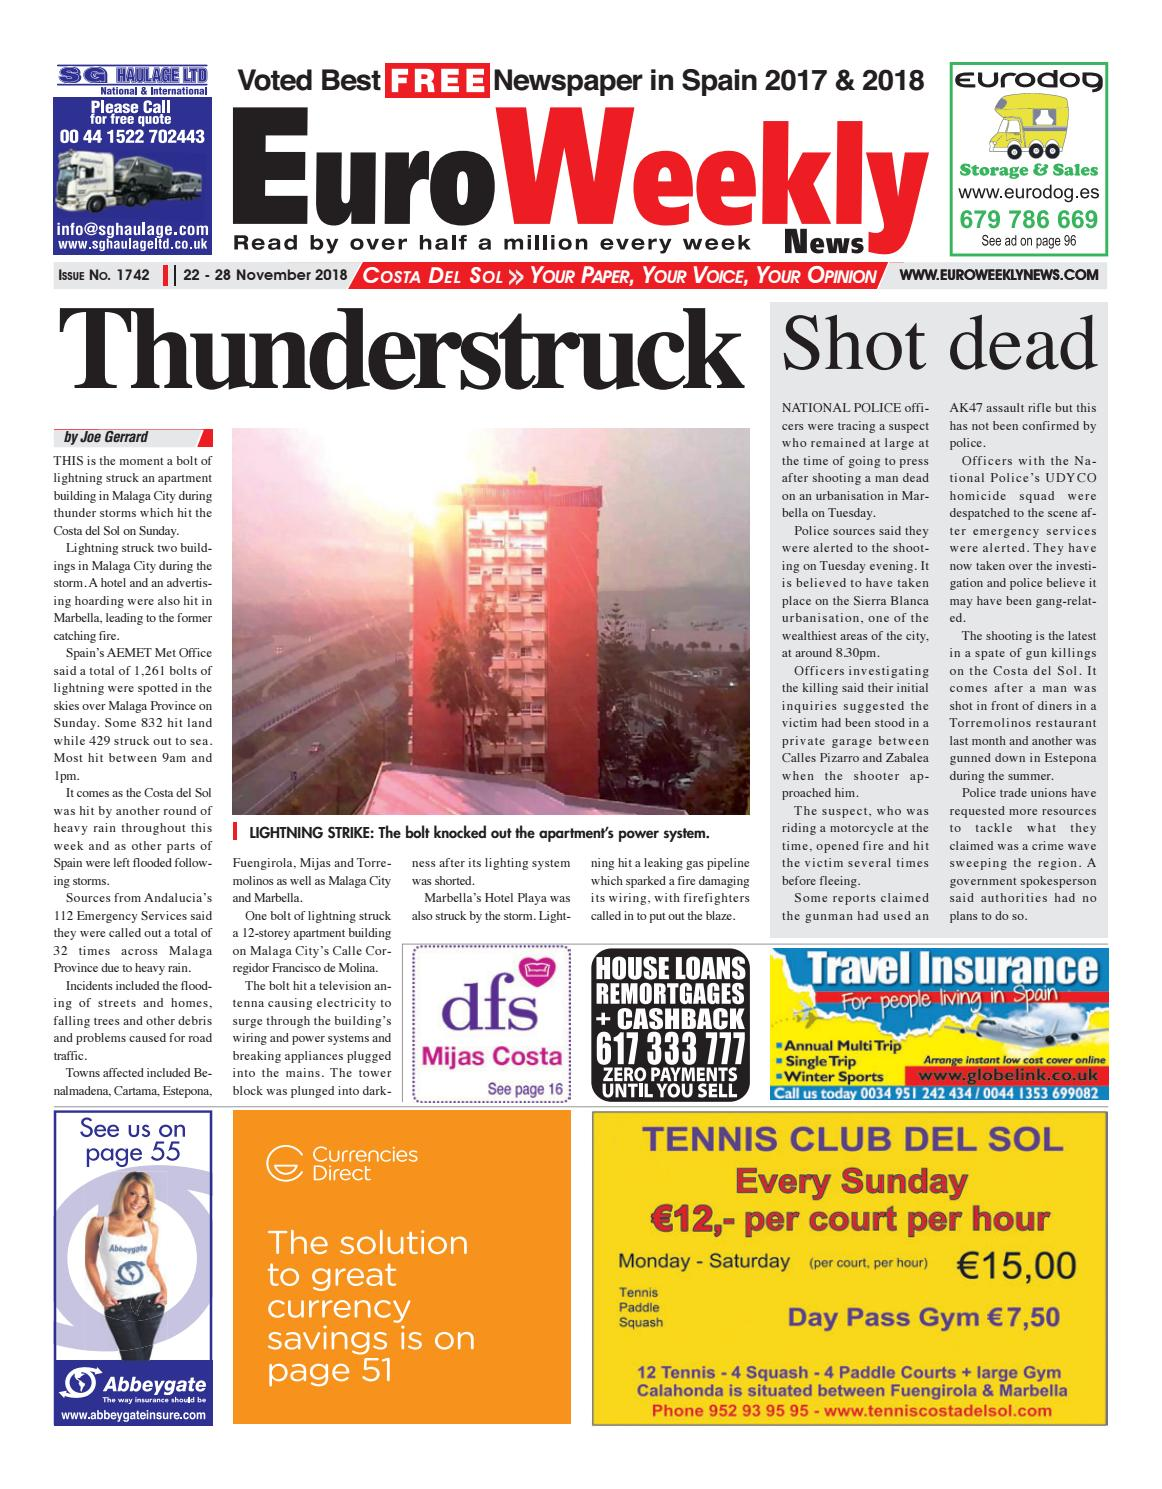 Euro Weekly News - Costa del Sol 22-28 November 2018 Issue 1742 by Euro  Weekly News Media S.A. - issuu 9e80e6703